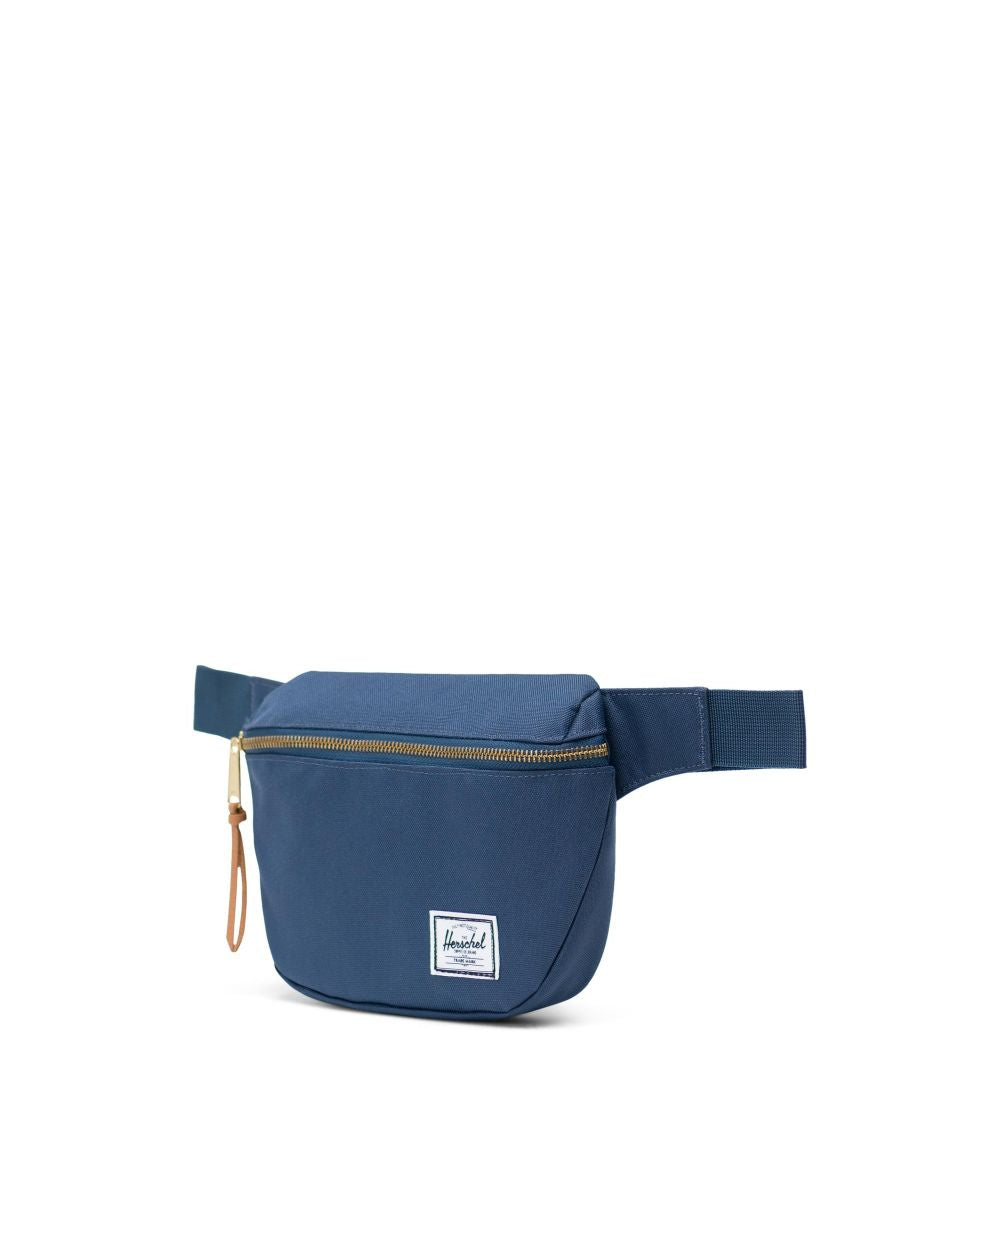 HERSCHEL - FIFTEEN HIP PACK IN NAVY